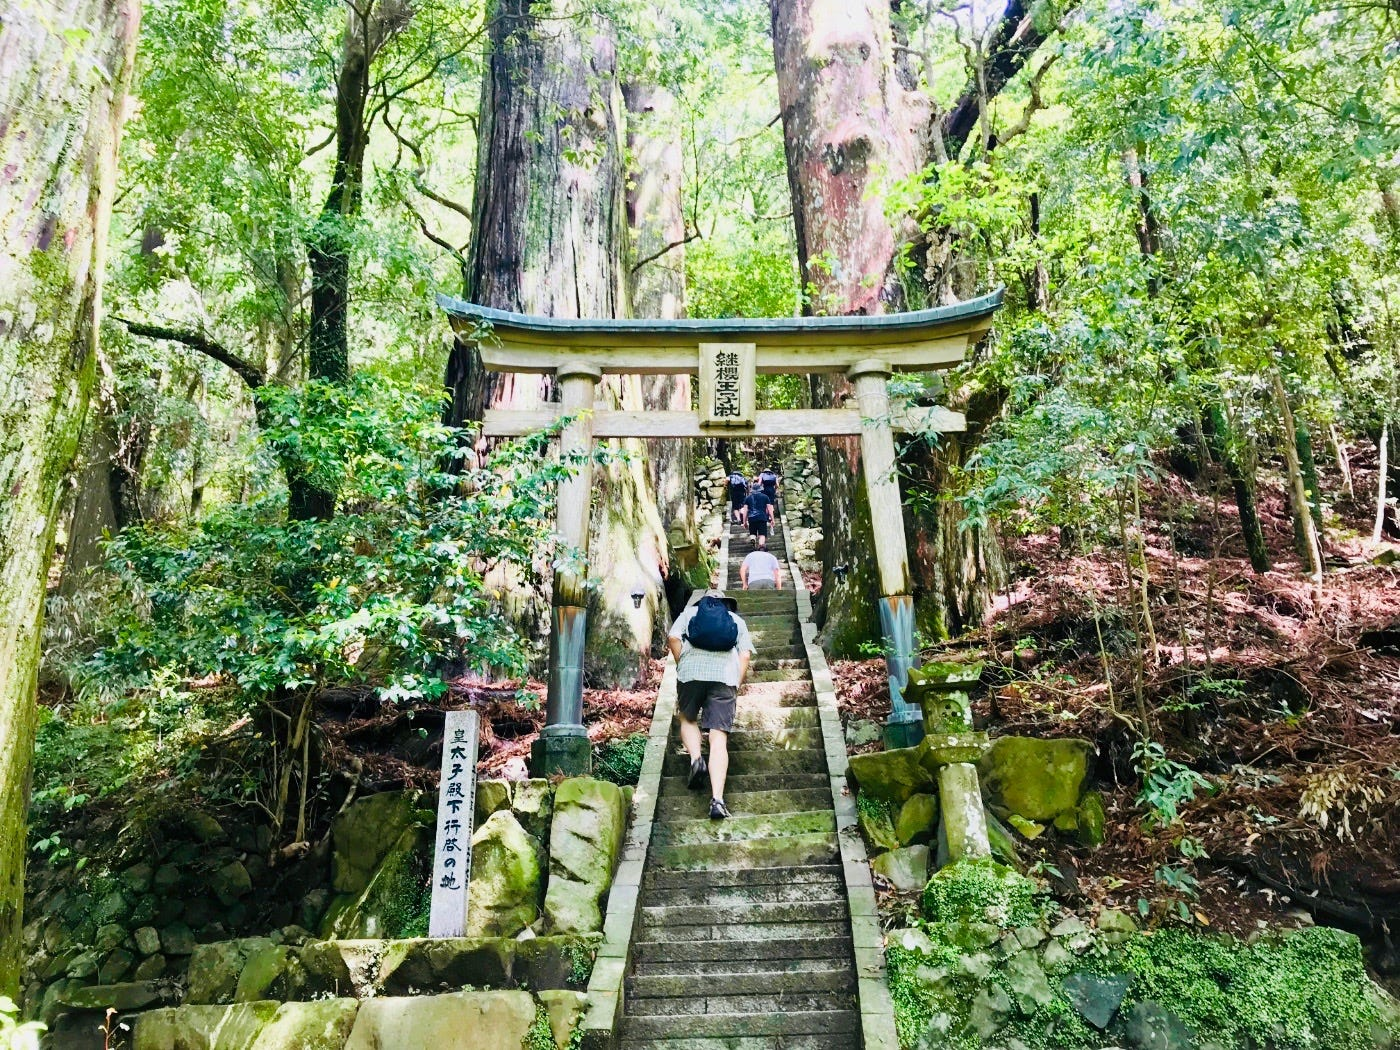 See stunning ancient sites and unspoiled nature on a Japanese pilgrimage hike   USA Today